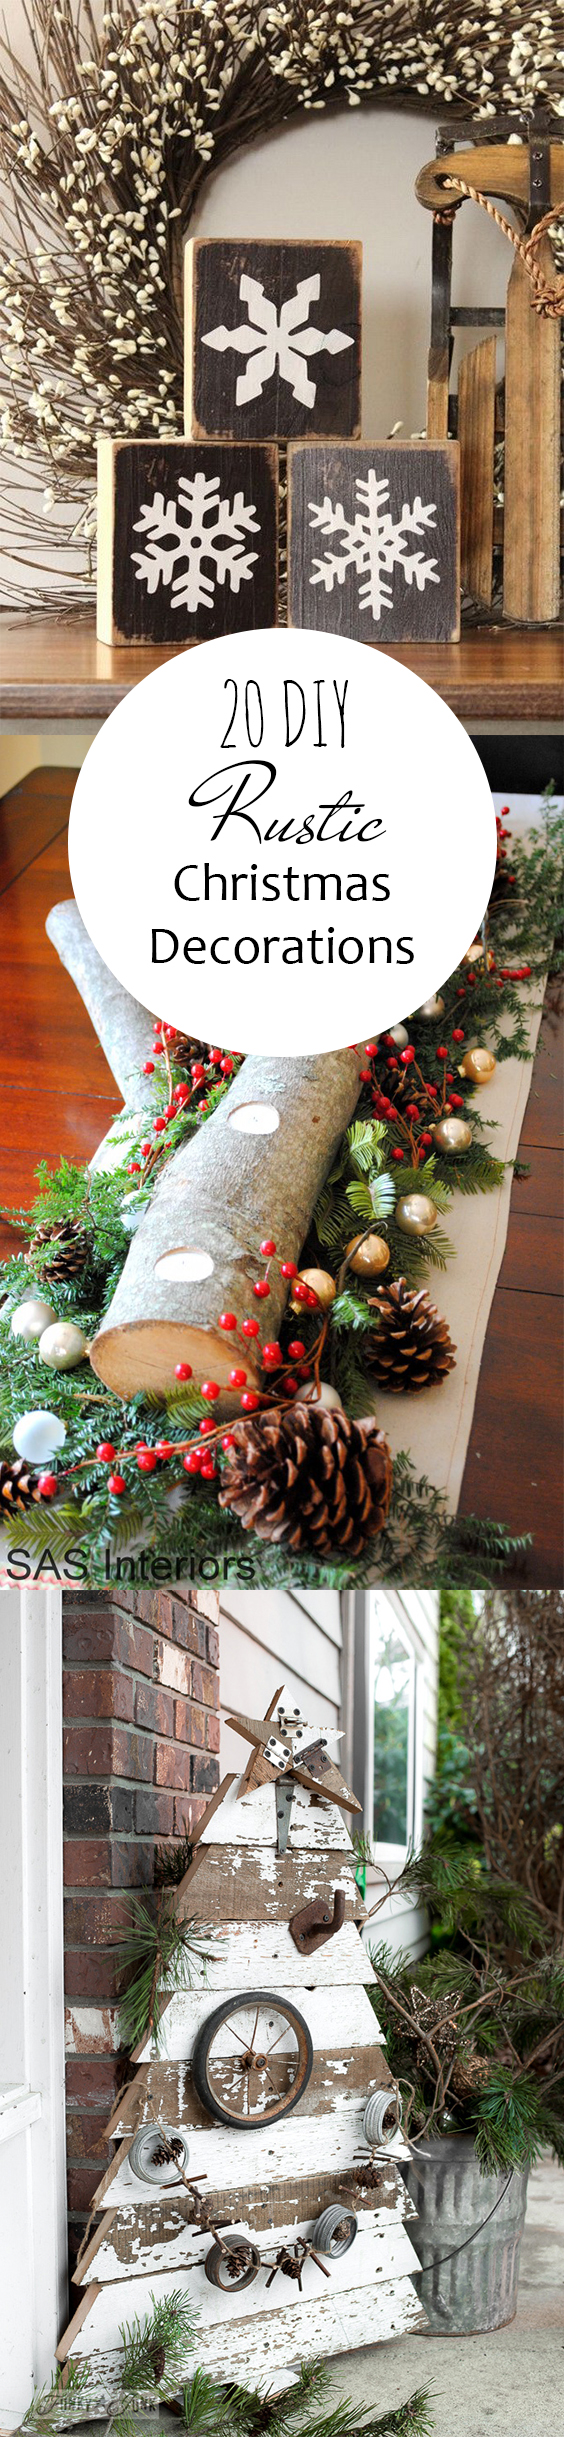 Rustic Christmas, Rustic Christmas Decorations, Decorations for Christmas, Rustic Home Decor, Easy Rustic Christmas Decorations, Handmade Rustic Home Decor, Homemade Farmhouse Decor DIYs, Popular Pin #christmas #diychristmas #diychristmasdecor #rustichome #rusticchristmasdiy #diyhomedecor #diydecor